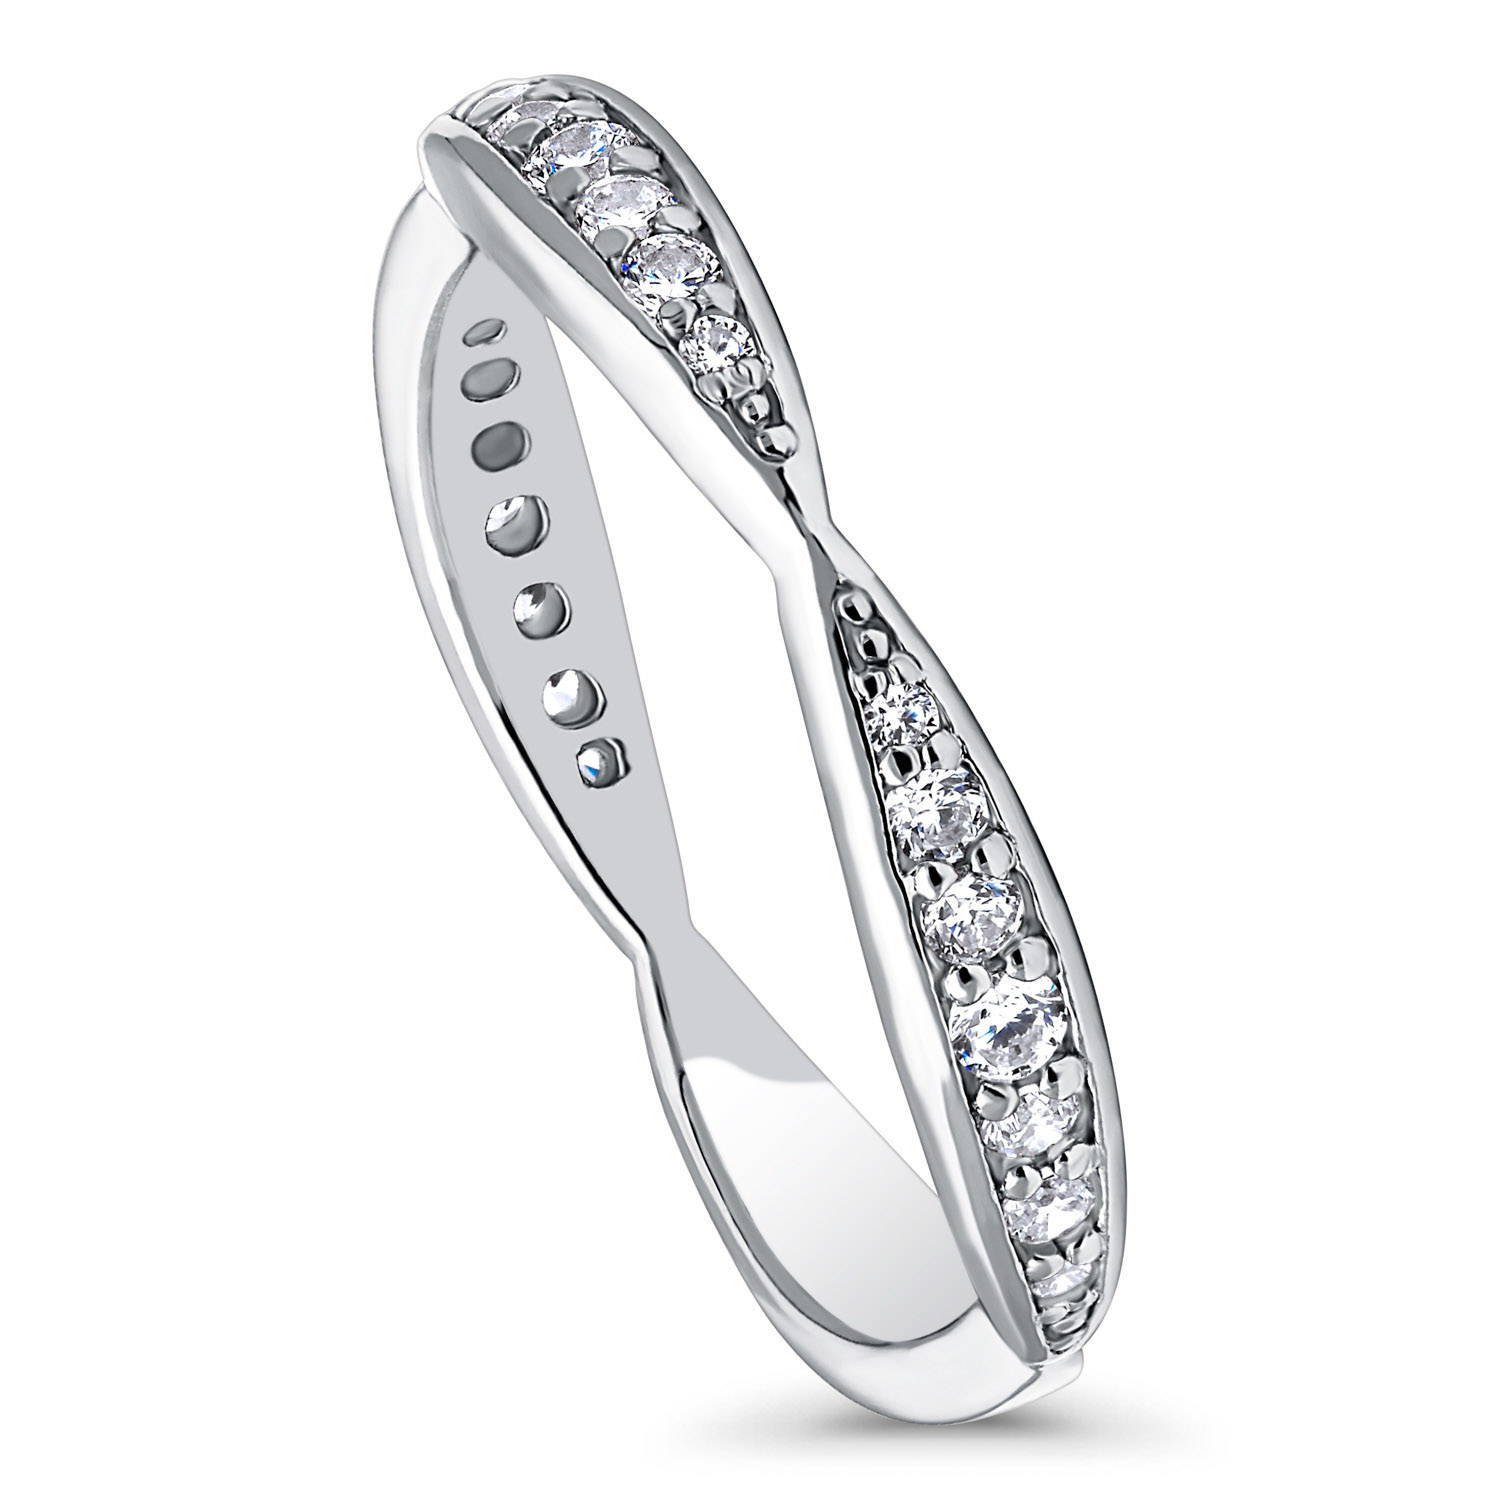 BERRICLE Rhodium Plated Sterling Silver Cubic Zirconia CZ Anniversary Curved Band Size 5